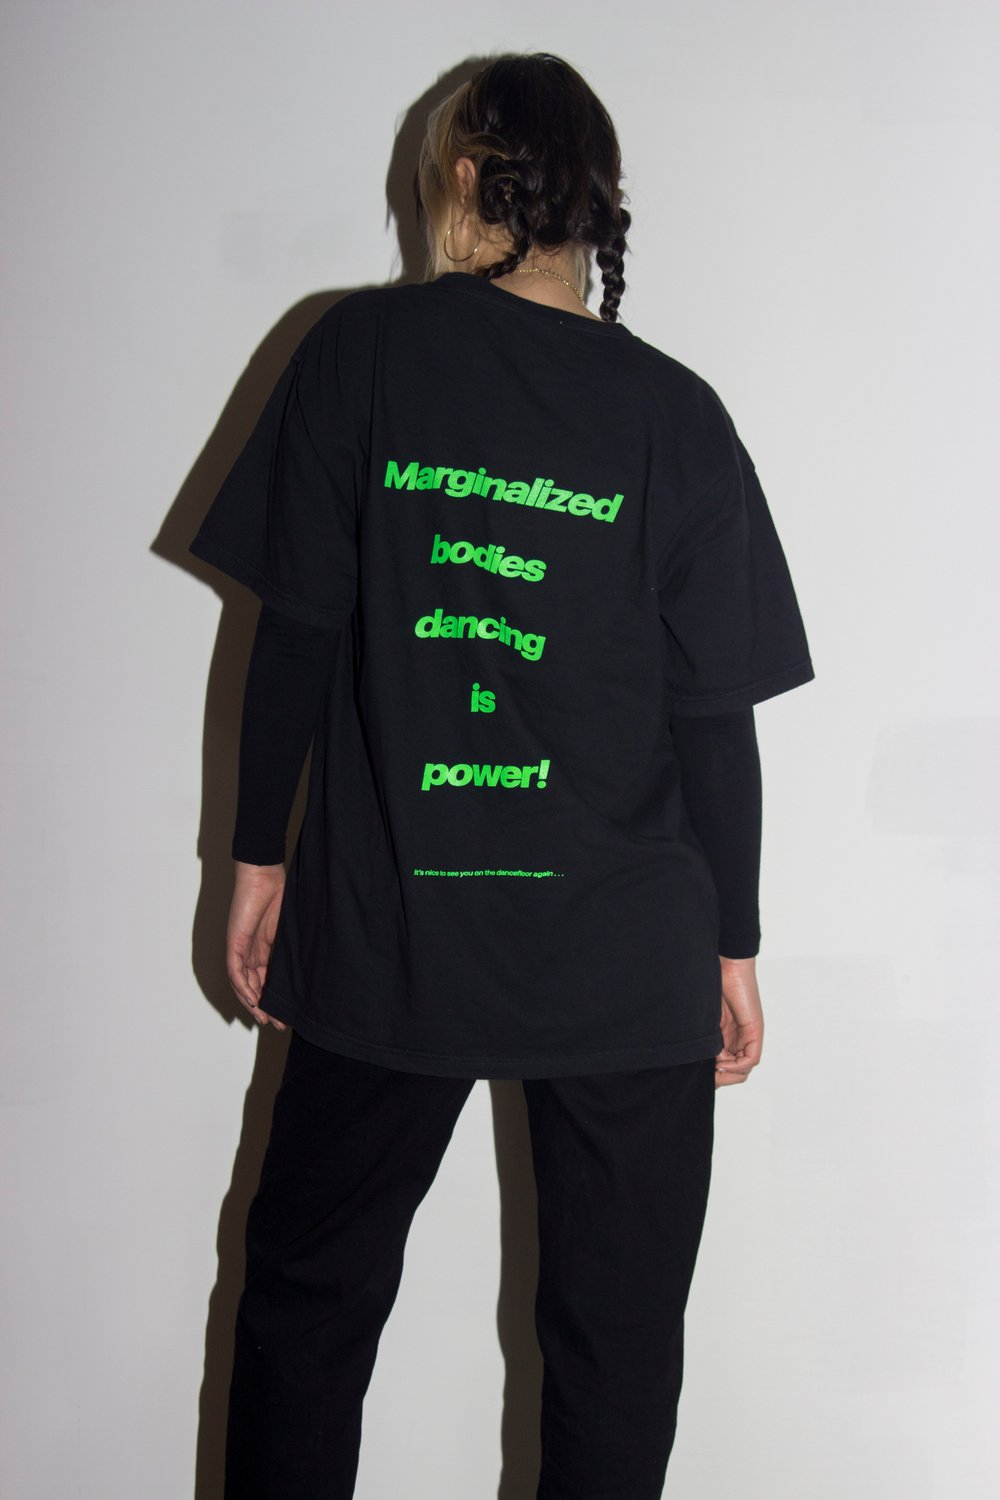 marginalized bodies tee, t-shirt, missing textures